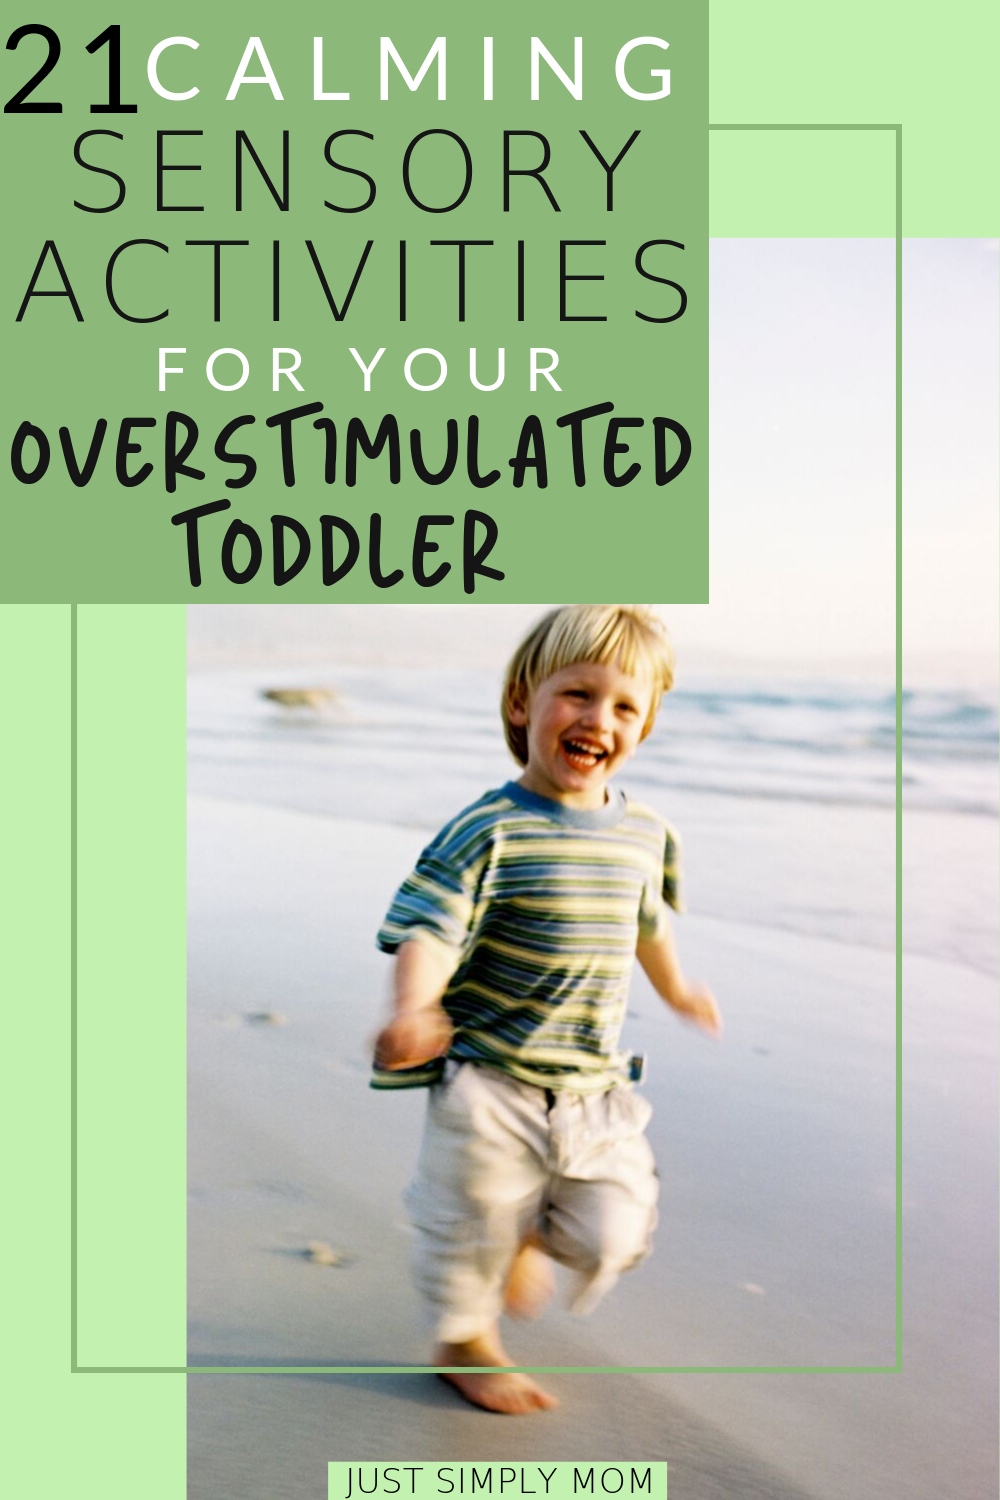 21 Calming Sensory Activities and Strategies for Your Overstimulated Toddler